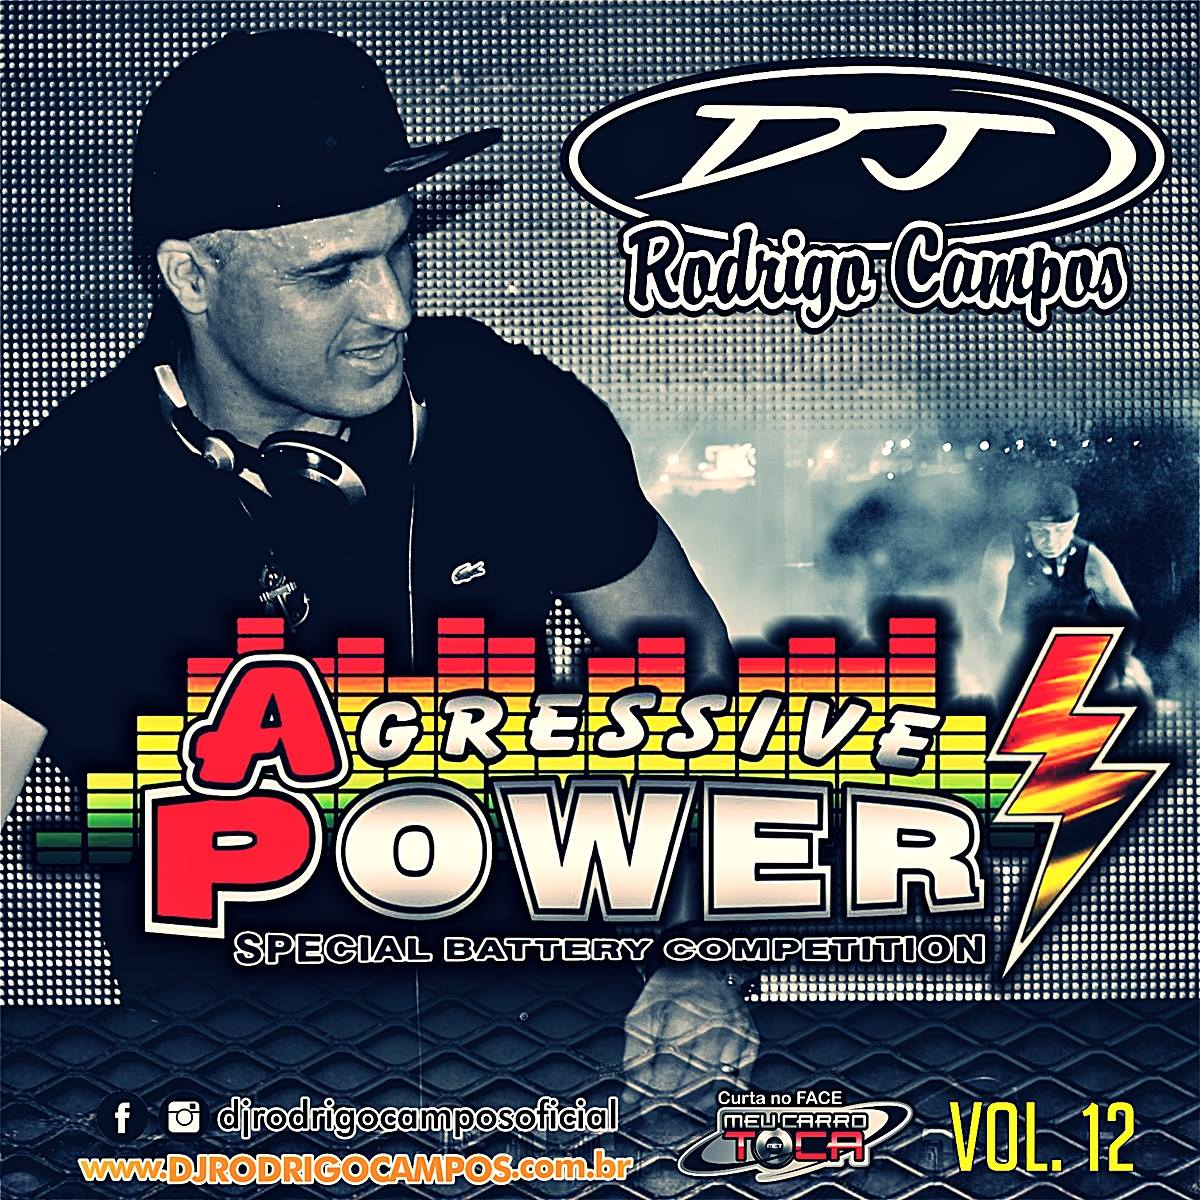 Baterias Agressive Power Vol 12